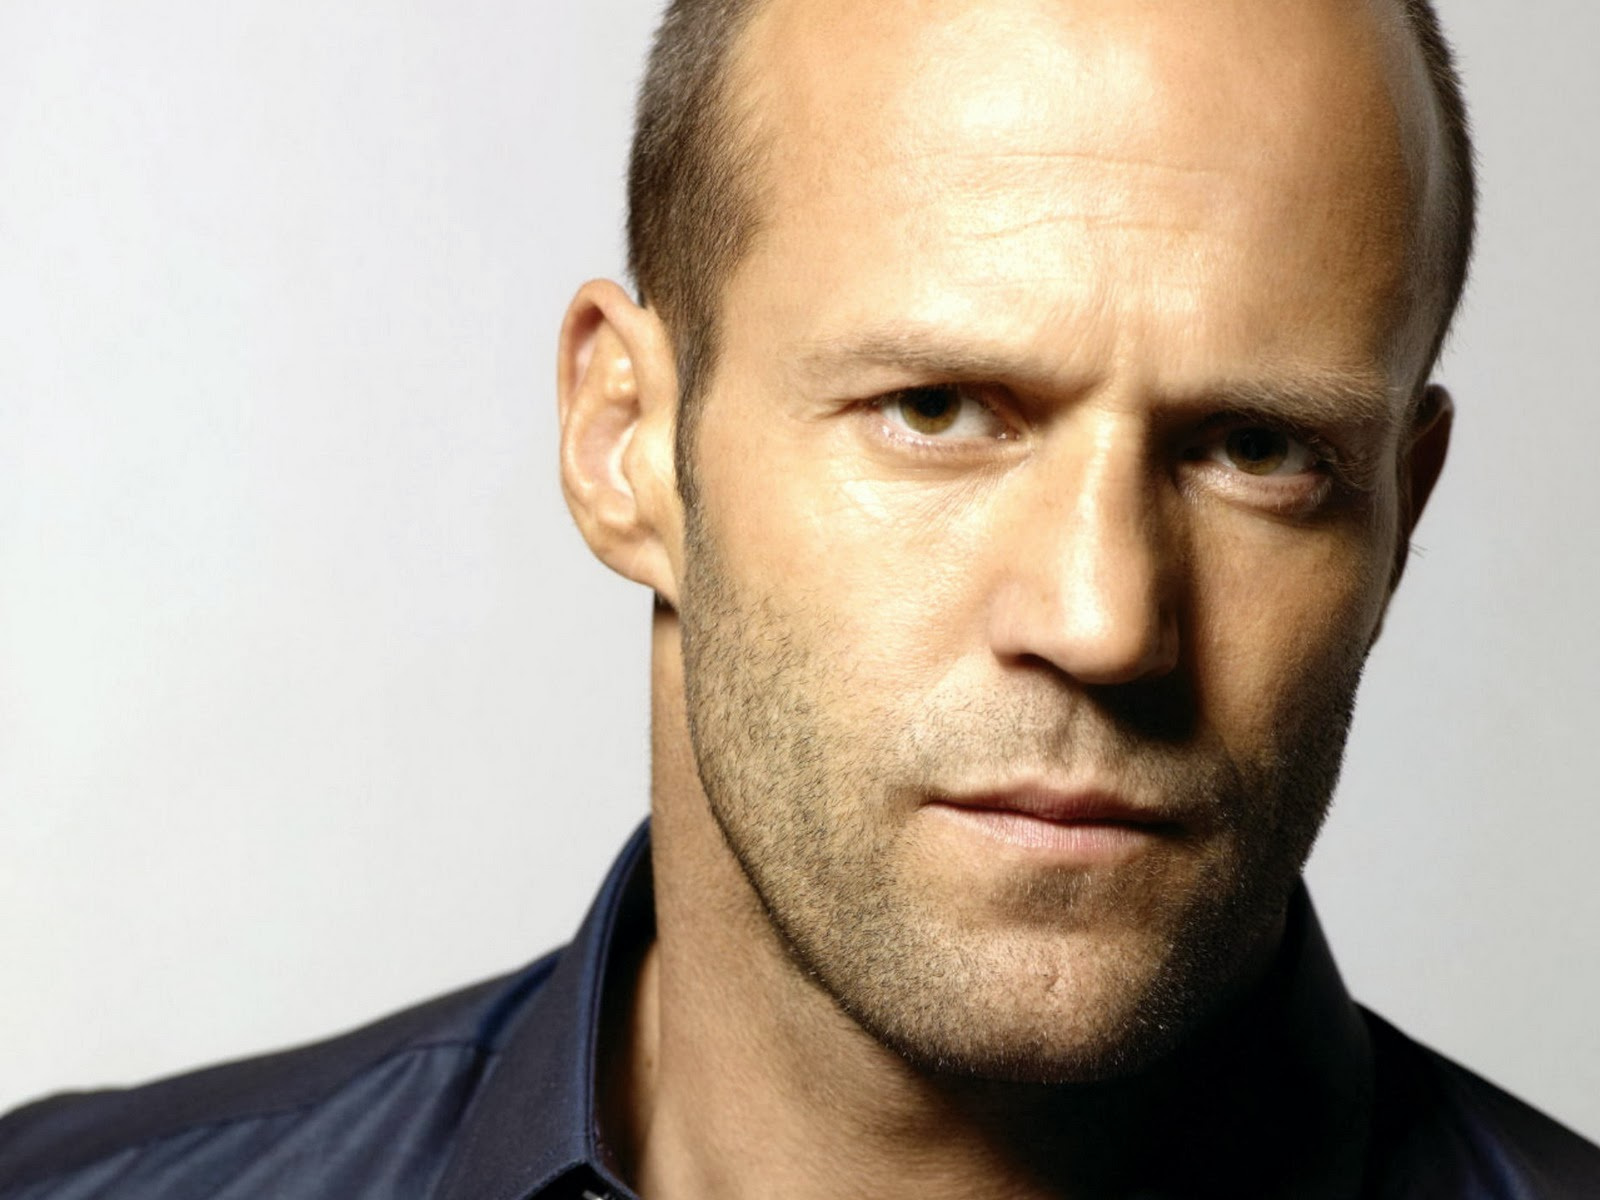 Biografi Jason Statham - Aktor Hollywood